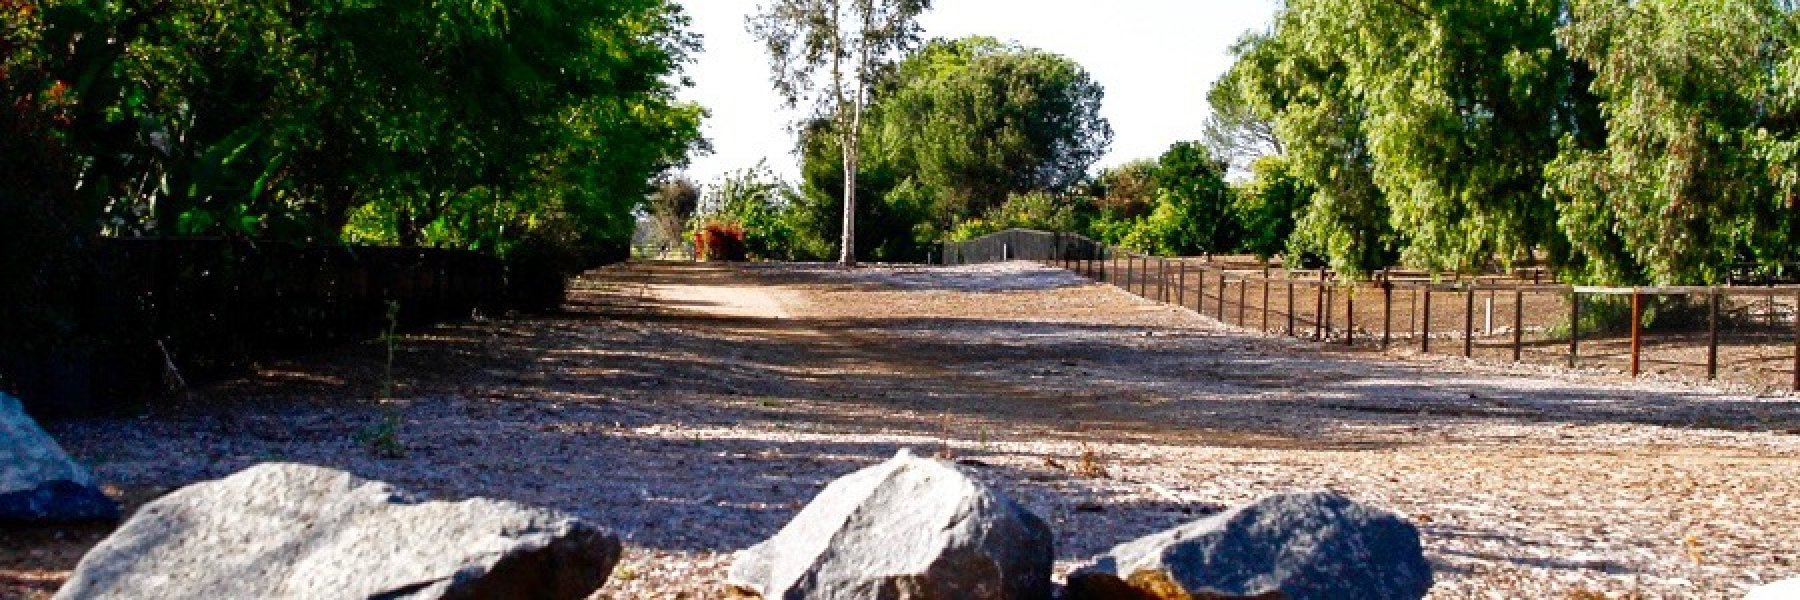 The Grove is a community of homes in Poway California